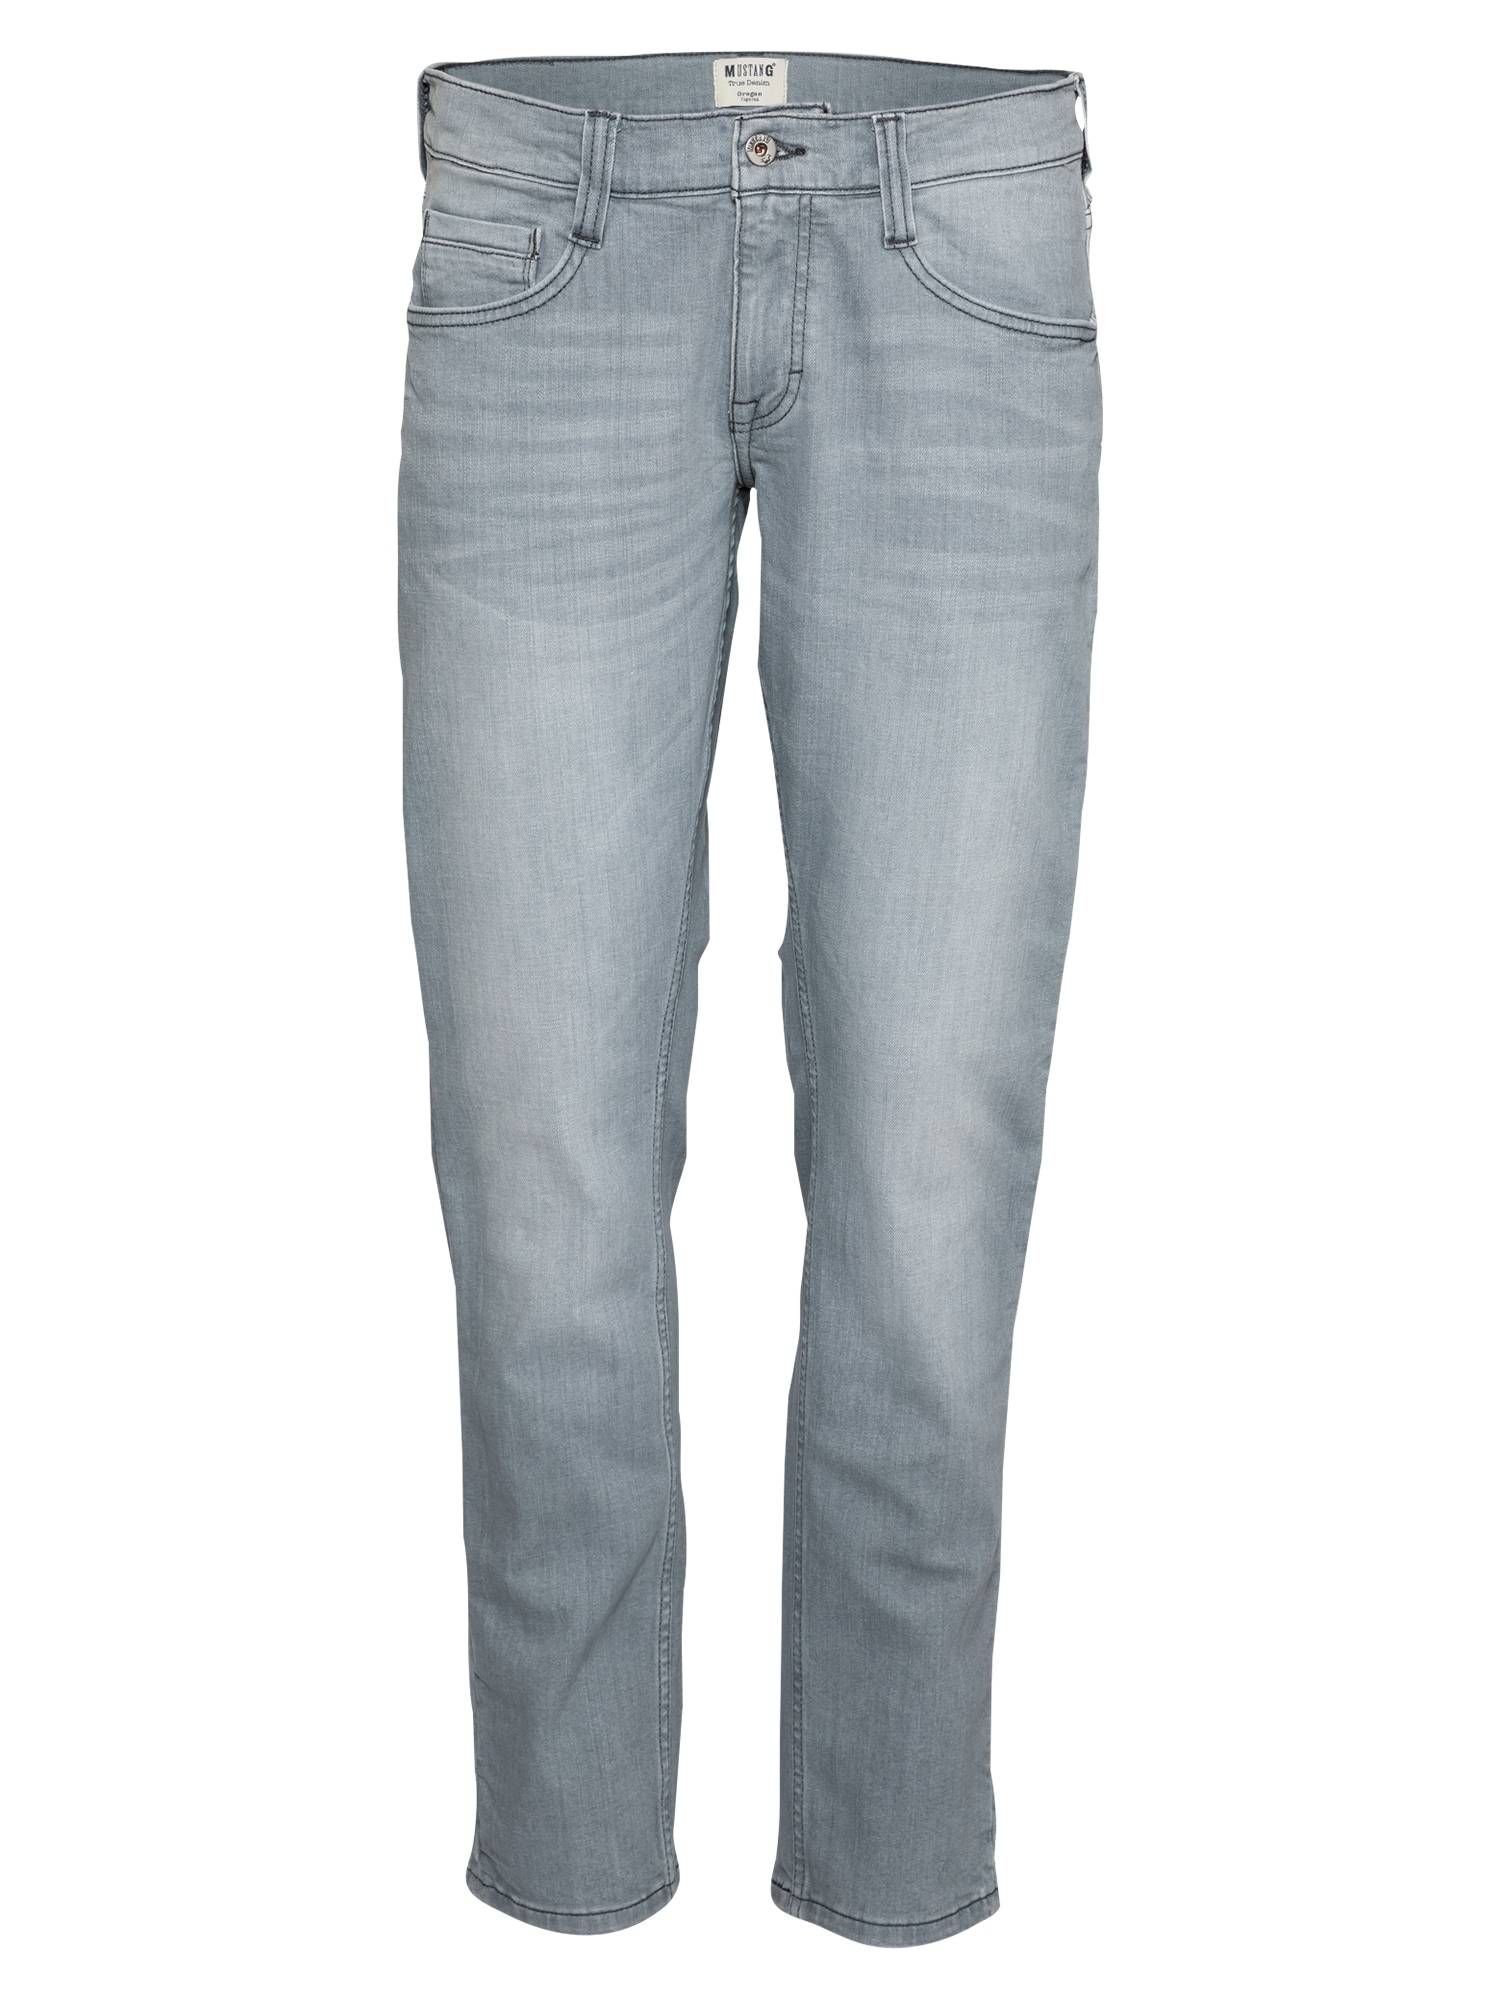 MUSTANG Jean 'Oregon'  - Gris - Taille: 38/32 - male